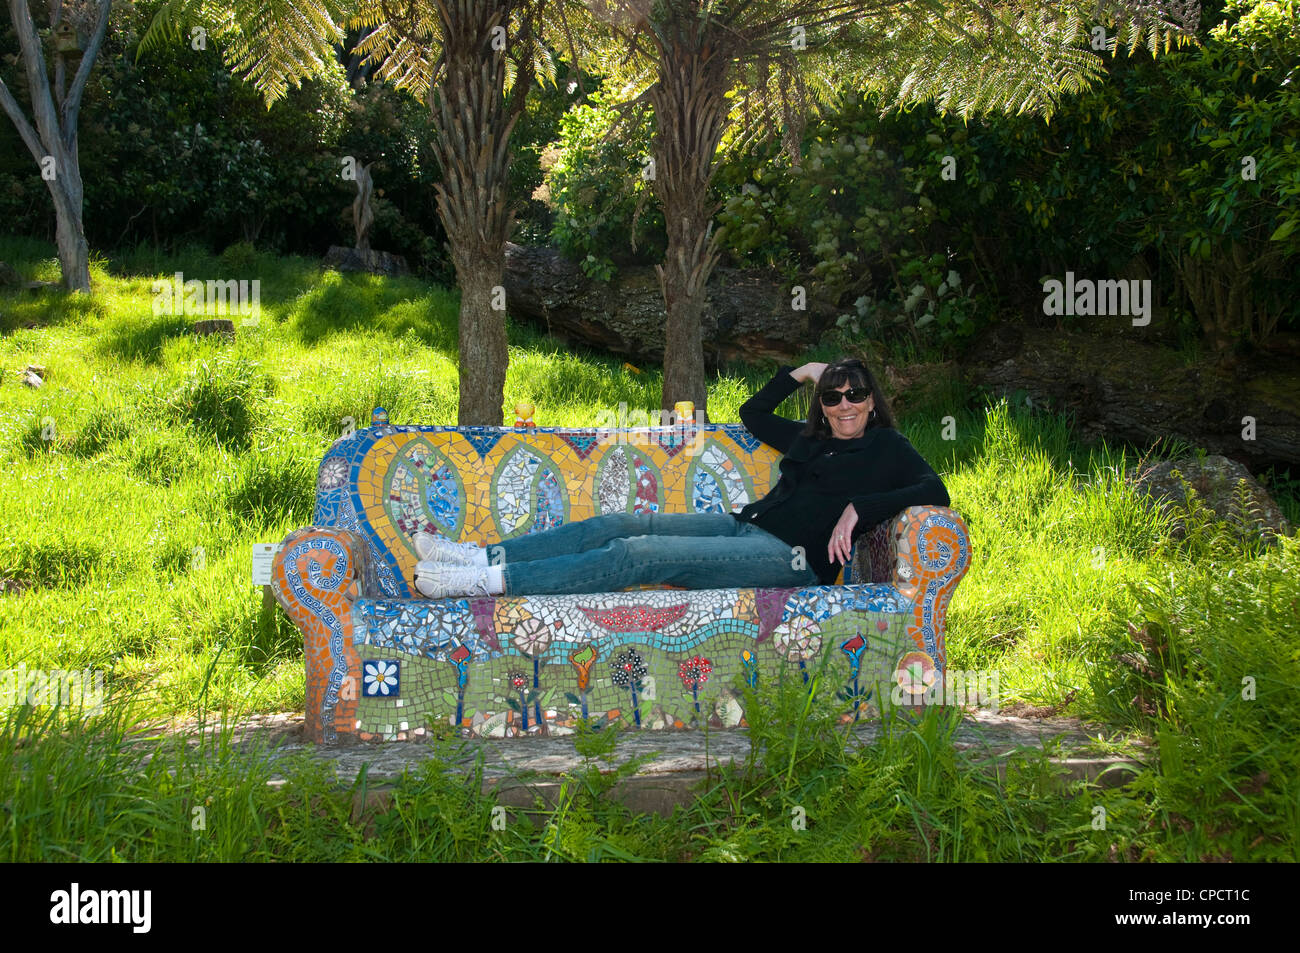 New Zealand South Island woman relaxing at lodge resort Lochmara on colorful stone artistic couch - Stock Image